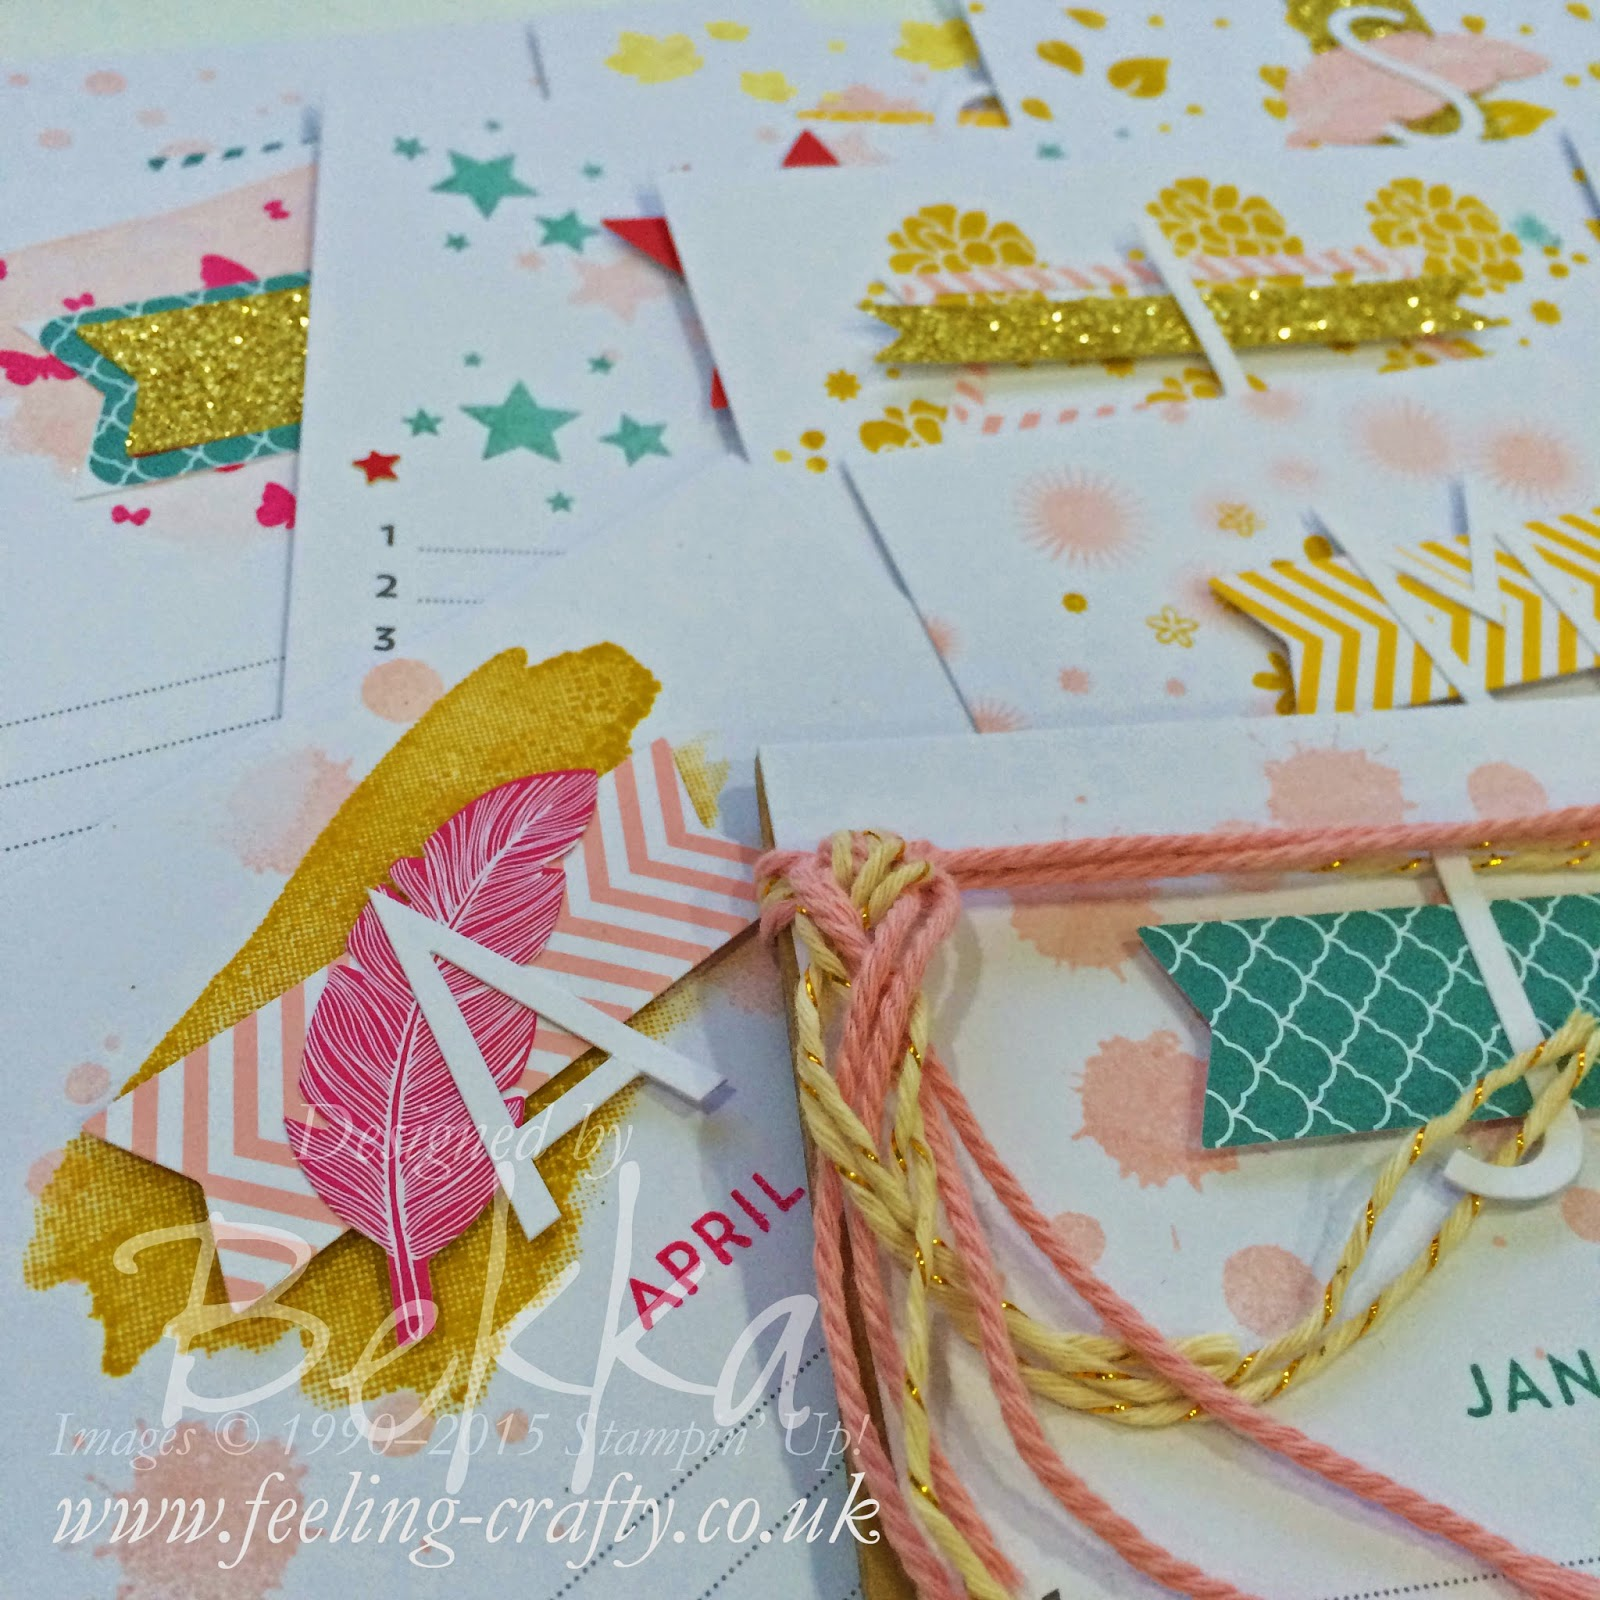 Perpetual Birthday Calendar Class - check it out here - available by post as well as in person